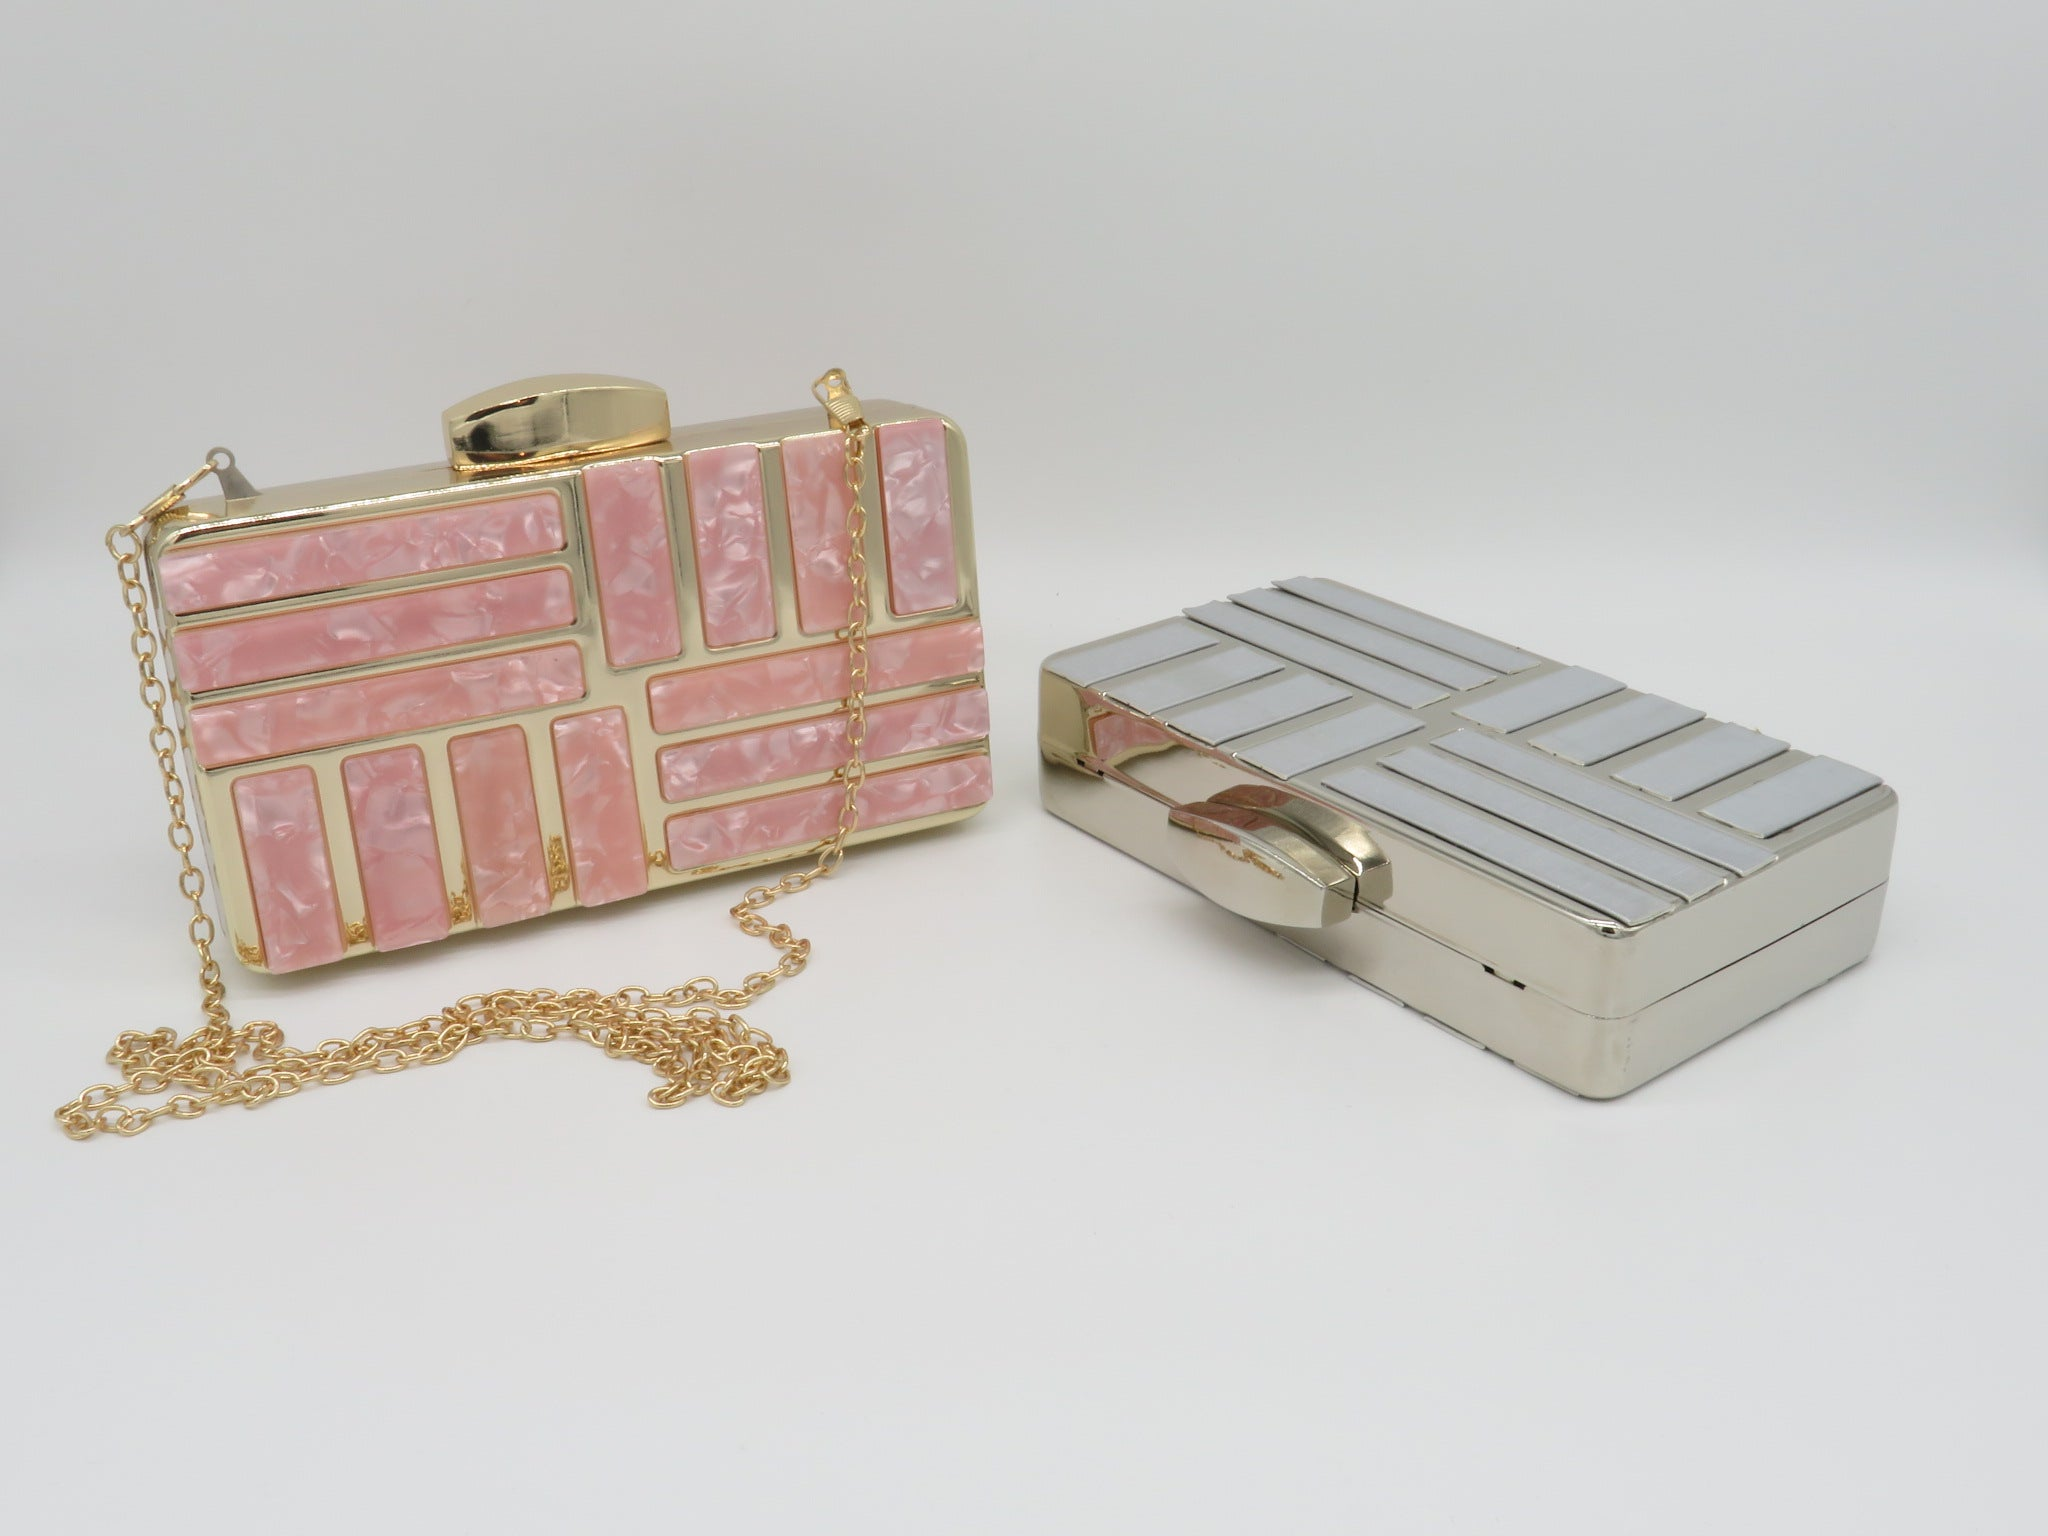 Zea - hard case box style, mother of pearl clutch bag, Beth Jordan